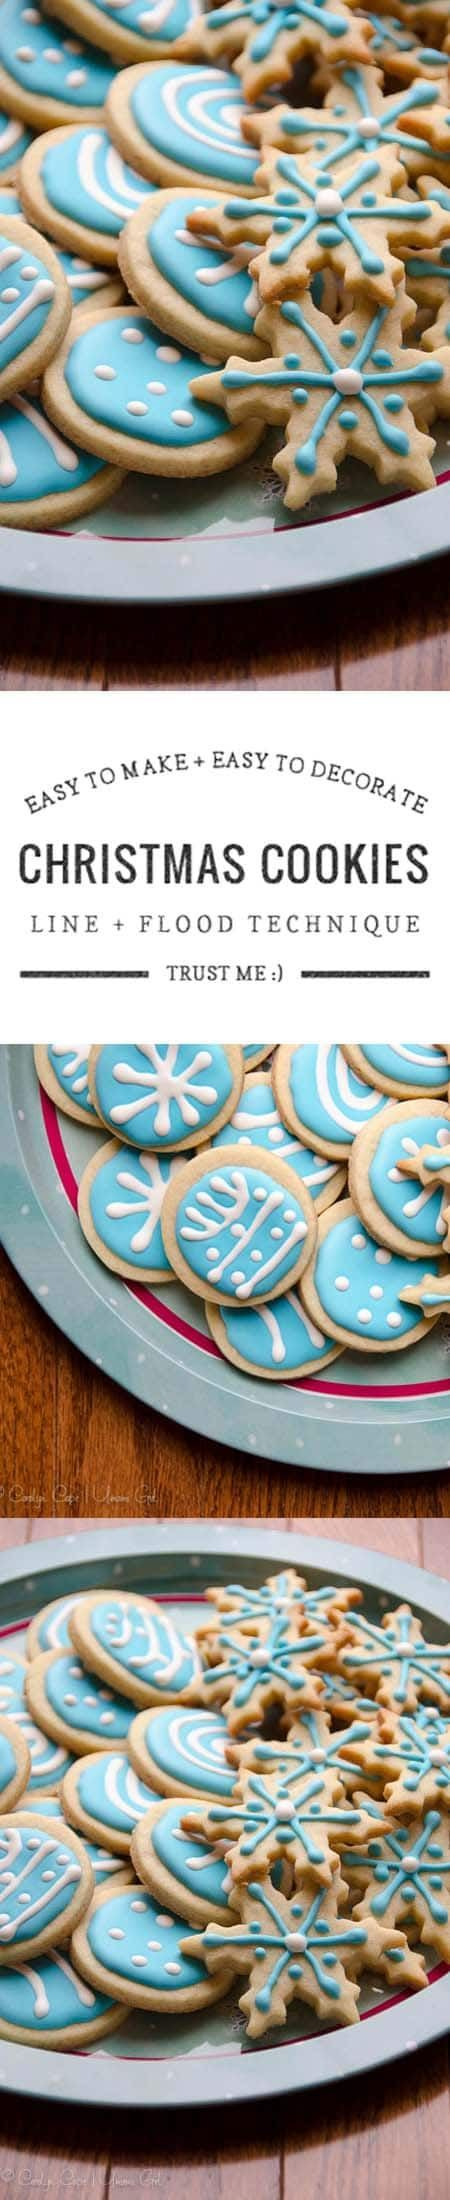 When it comes to holiday baking, I'm all about the ratios — and I don't mean ingredient ratios. I mean I'm looking for a very high ratio of cookie fabulousness to time, effort and skill level required. This used to mean I would shy away from cookie recipe